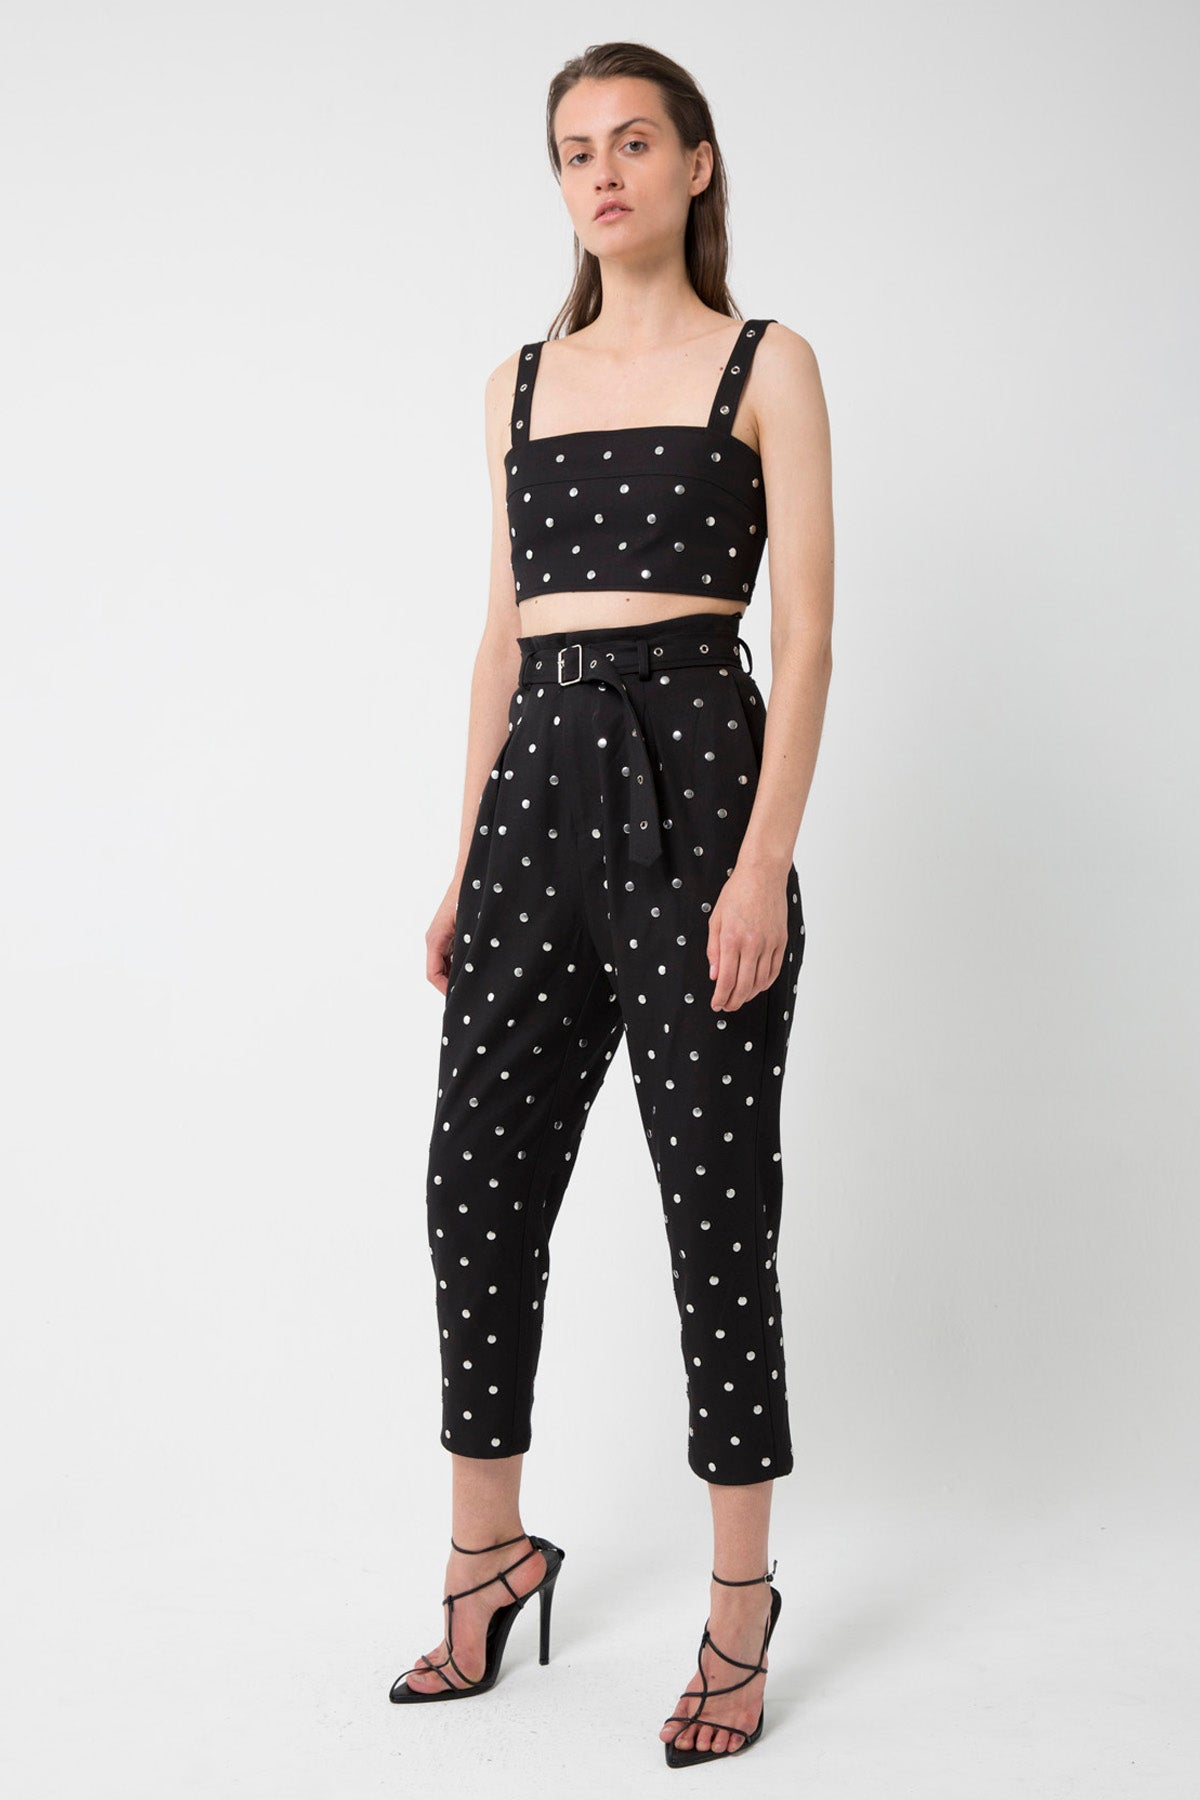 HEY STUD CROP TOP | BLACK